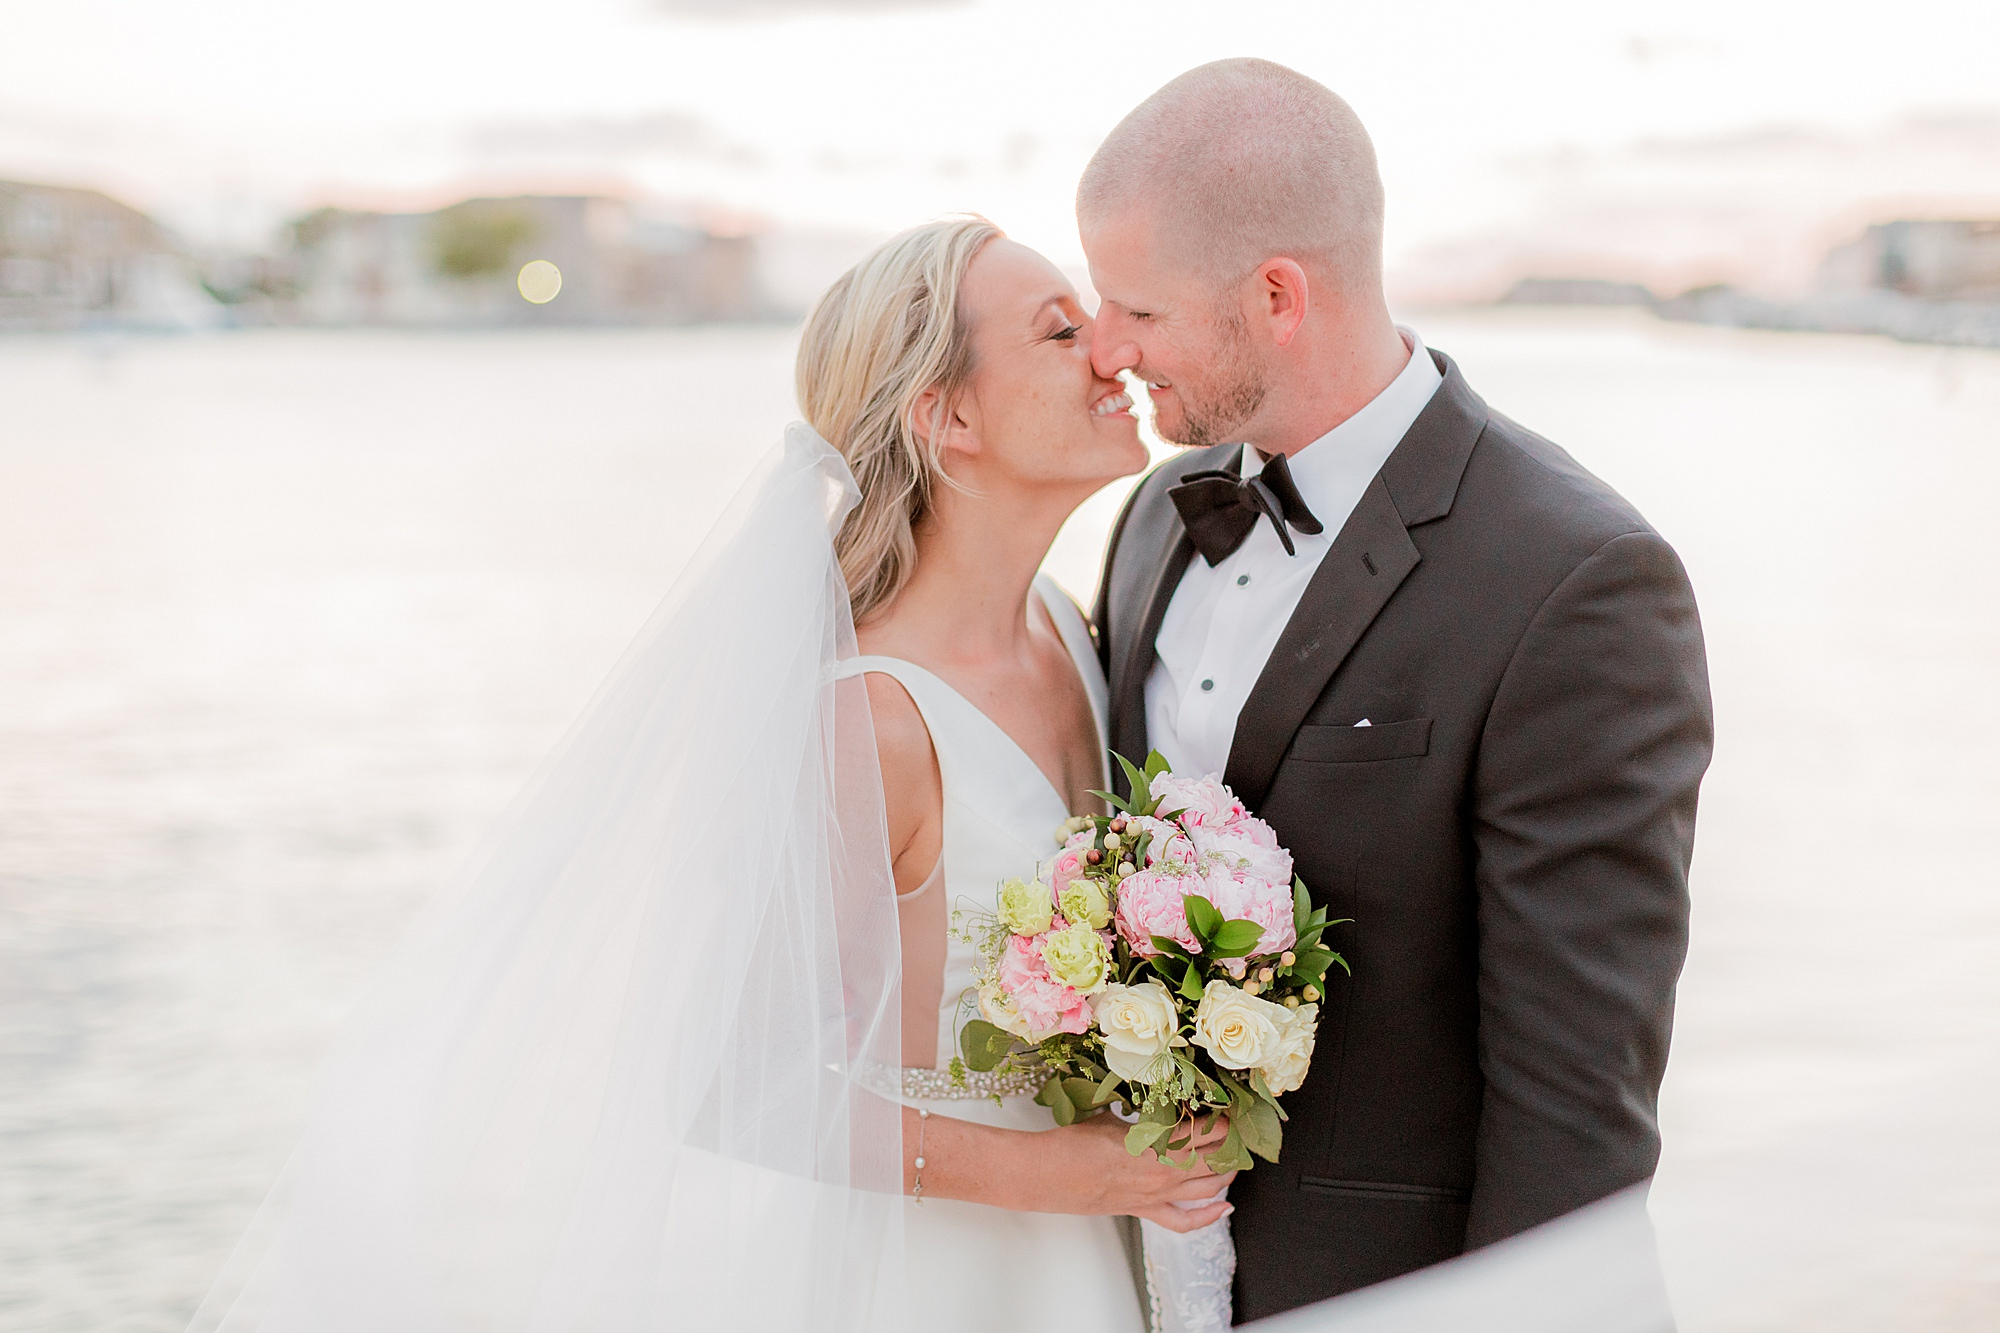 Natural and Vibrant Wedding Photography at the Reeds in Stone Harbor NJ by Magdalena Studios 0061